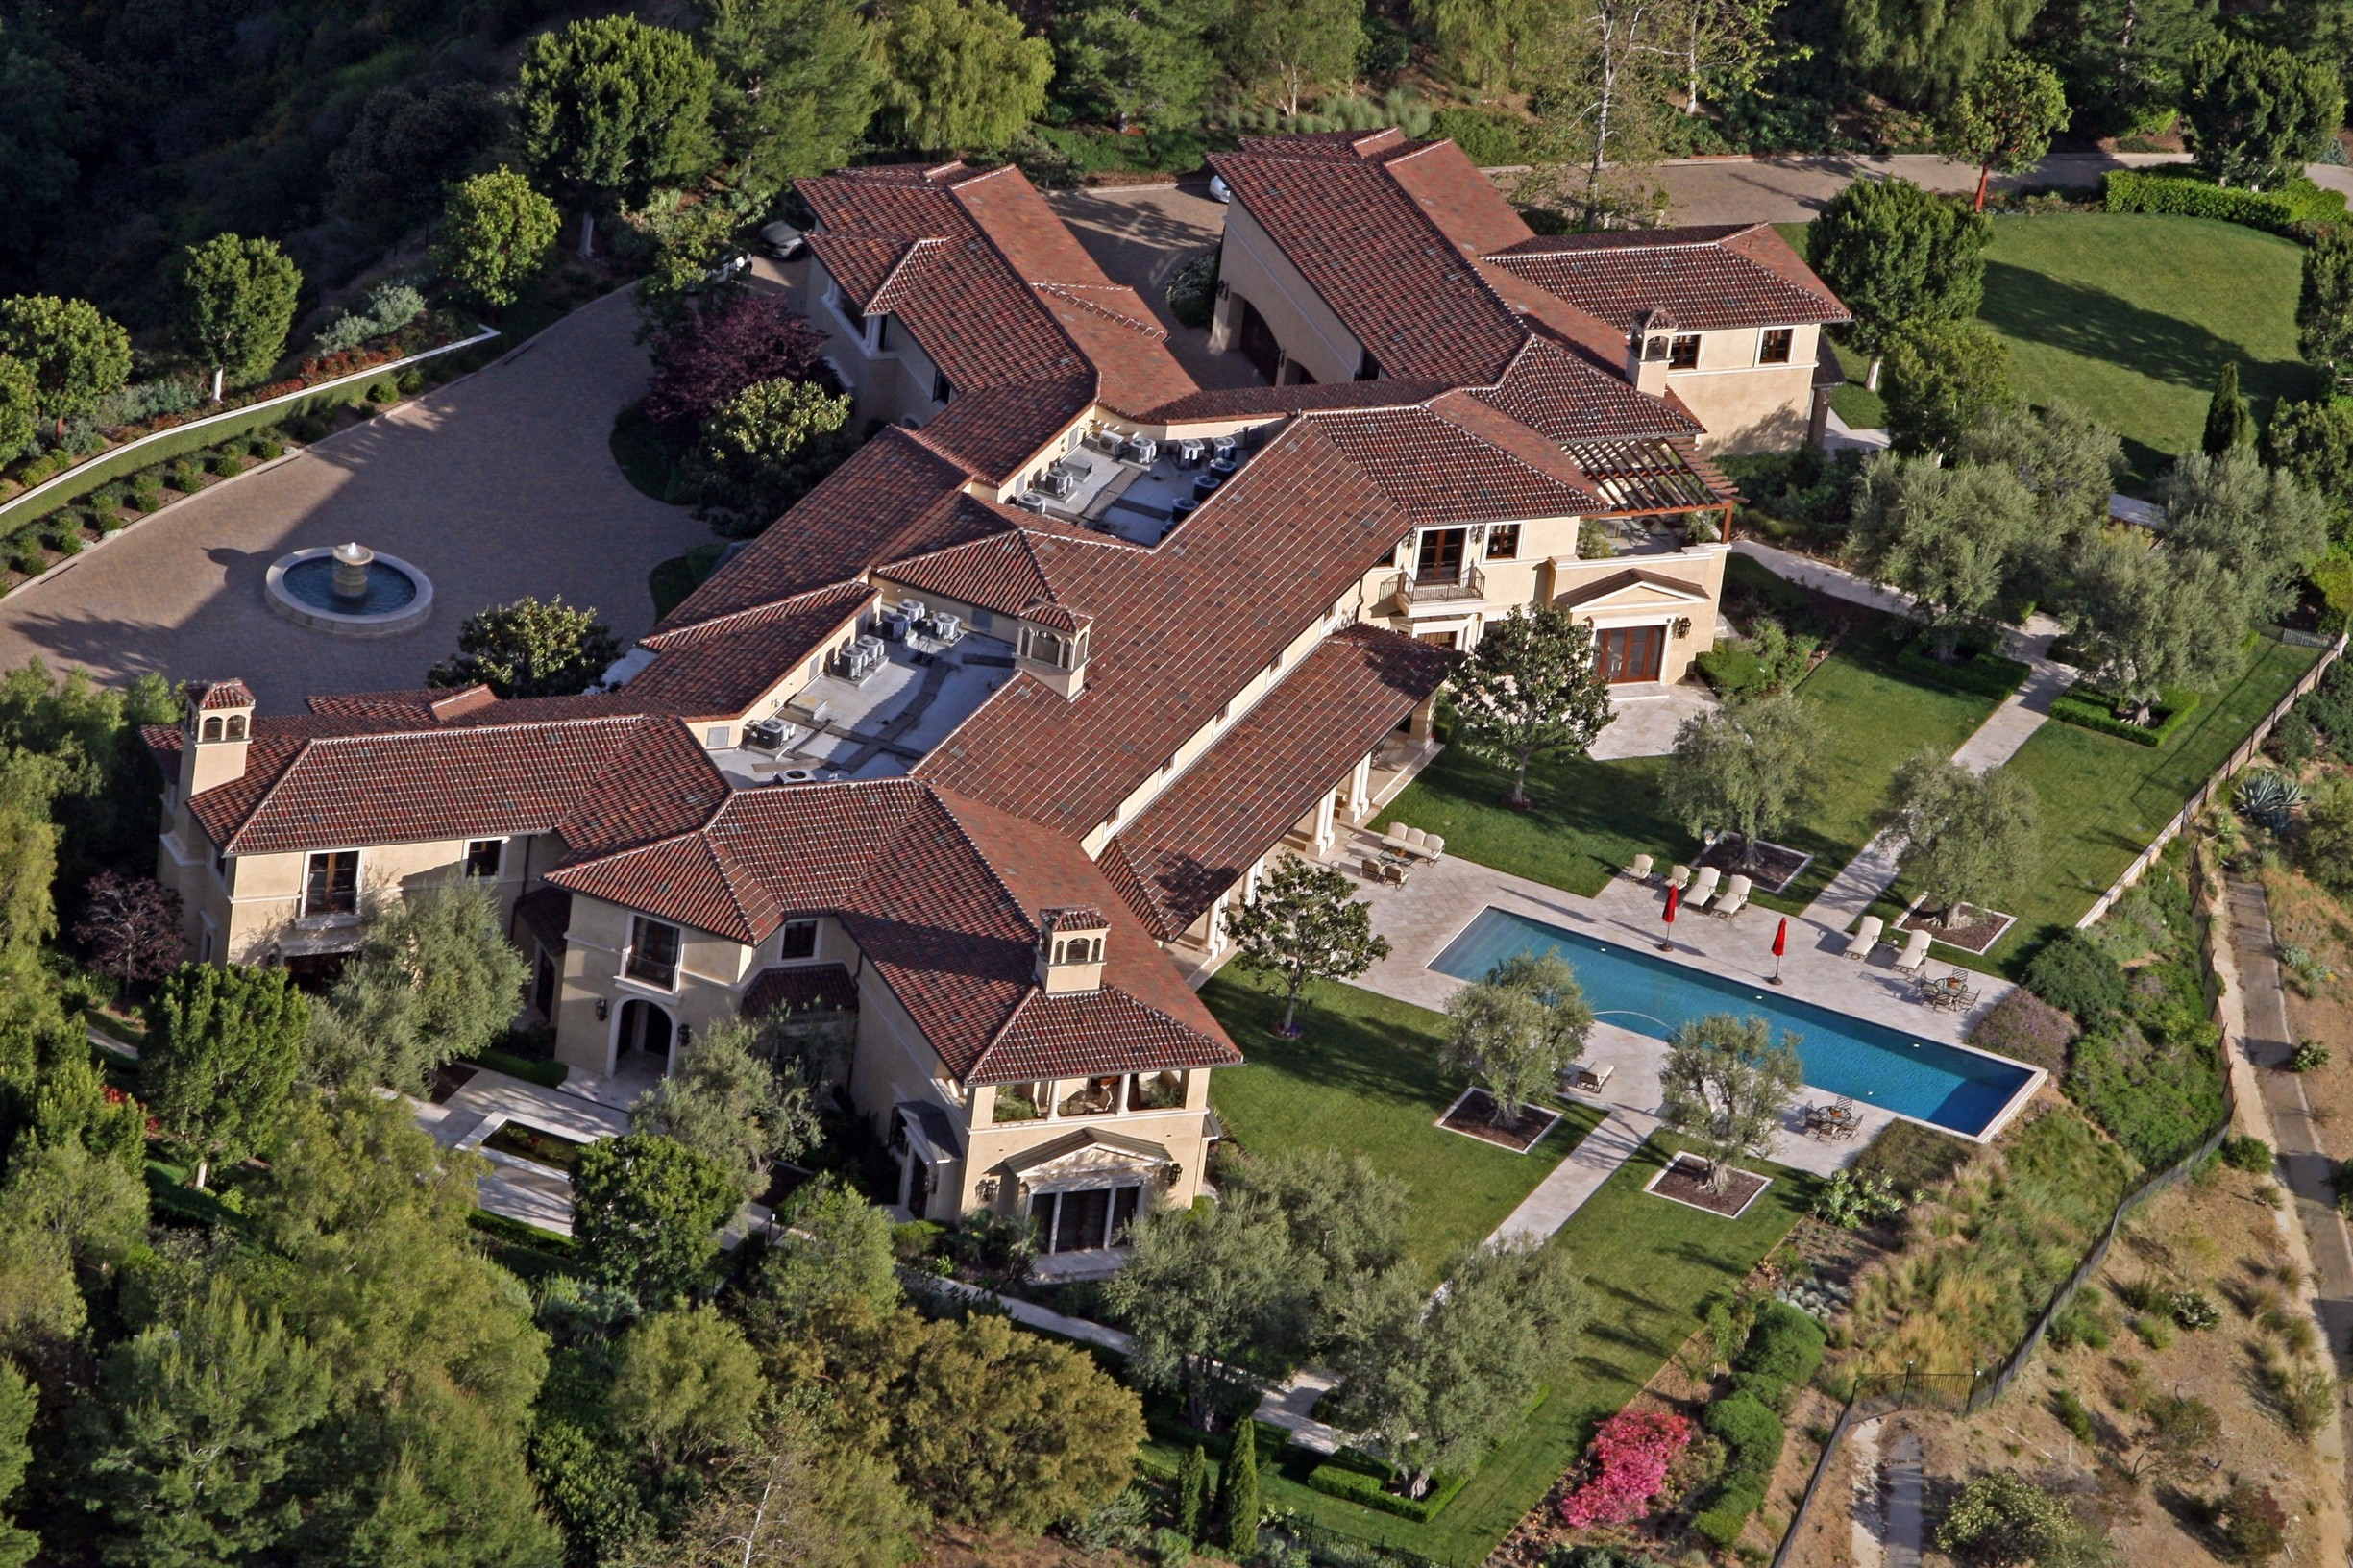 Prince Harry and Meghan Markle have reportedly been staying in an ultra-luxury Beverly Hills mansion that belongs to Tyler Perry, Perry's eight-bedroom, 12-bathroom Tuscan-style villa sits on the top of a hill in the exclusive Beverly Ridge Estates gated community.  Dozen's of A list celebrities live just walking distance from the 22-acre property include Adele, Ashton Kutcher, Mila Kunis, Nicole Richie, Cameron Diaz, Nicole Kidman, Jennifer Lawence and Katy Perry. 07 May 2020, Image: 517896138, License: Rights-managed, Restrictions: World Rights, Model Release: no, Credit line: MEGA / The Mega Agency / Profimedia